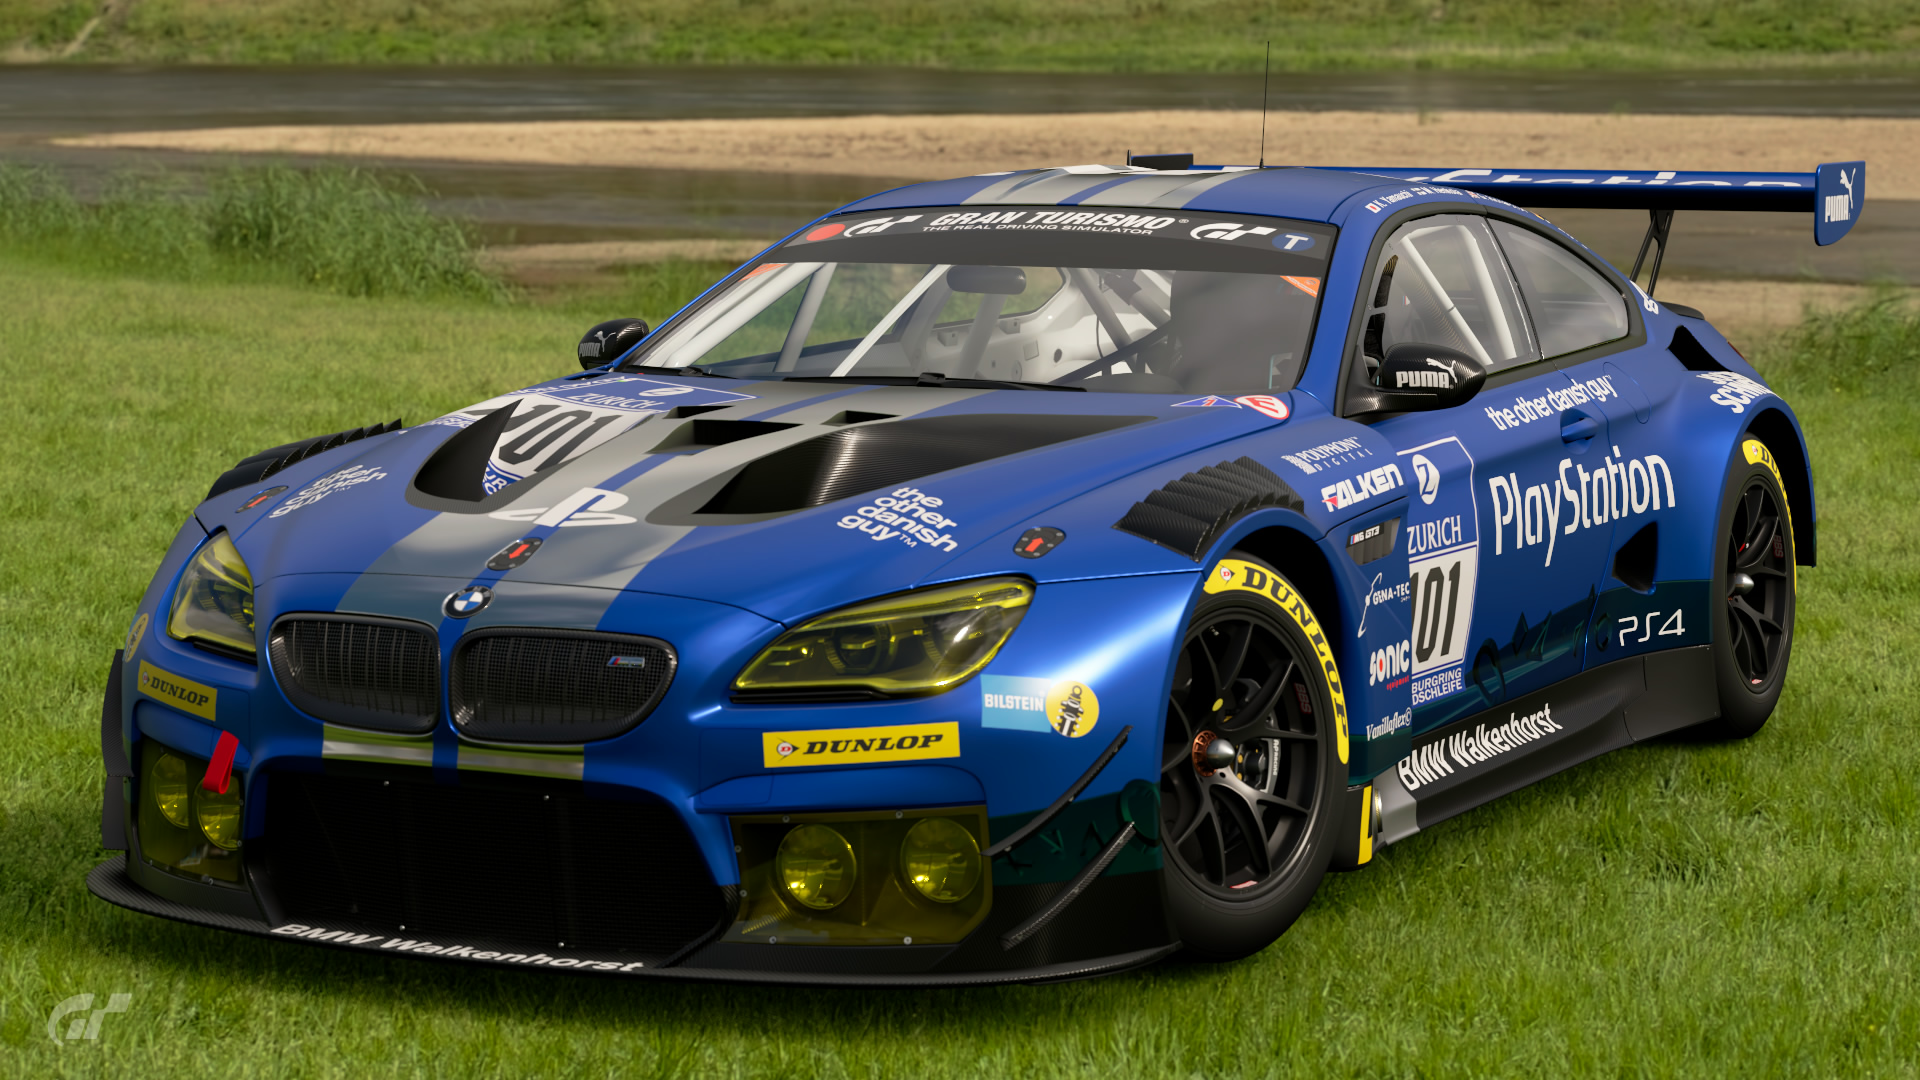 bmw m6 gt3 walkenhorst motorsport 39 16 gran turismo wiki fandom powered by wikia. Black Bedroom Furniture Sets. Home Design Ideas